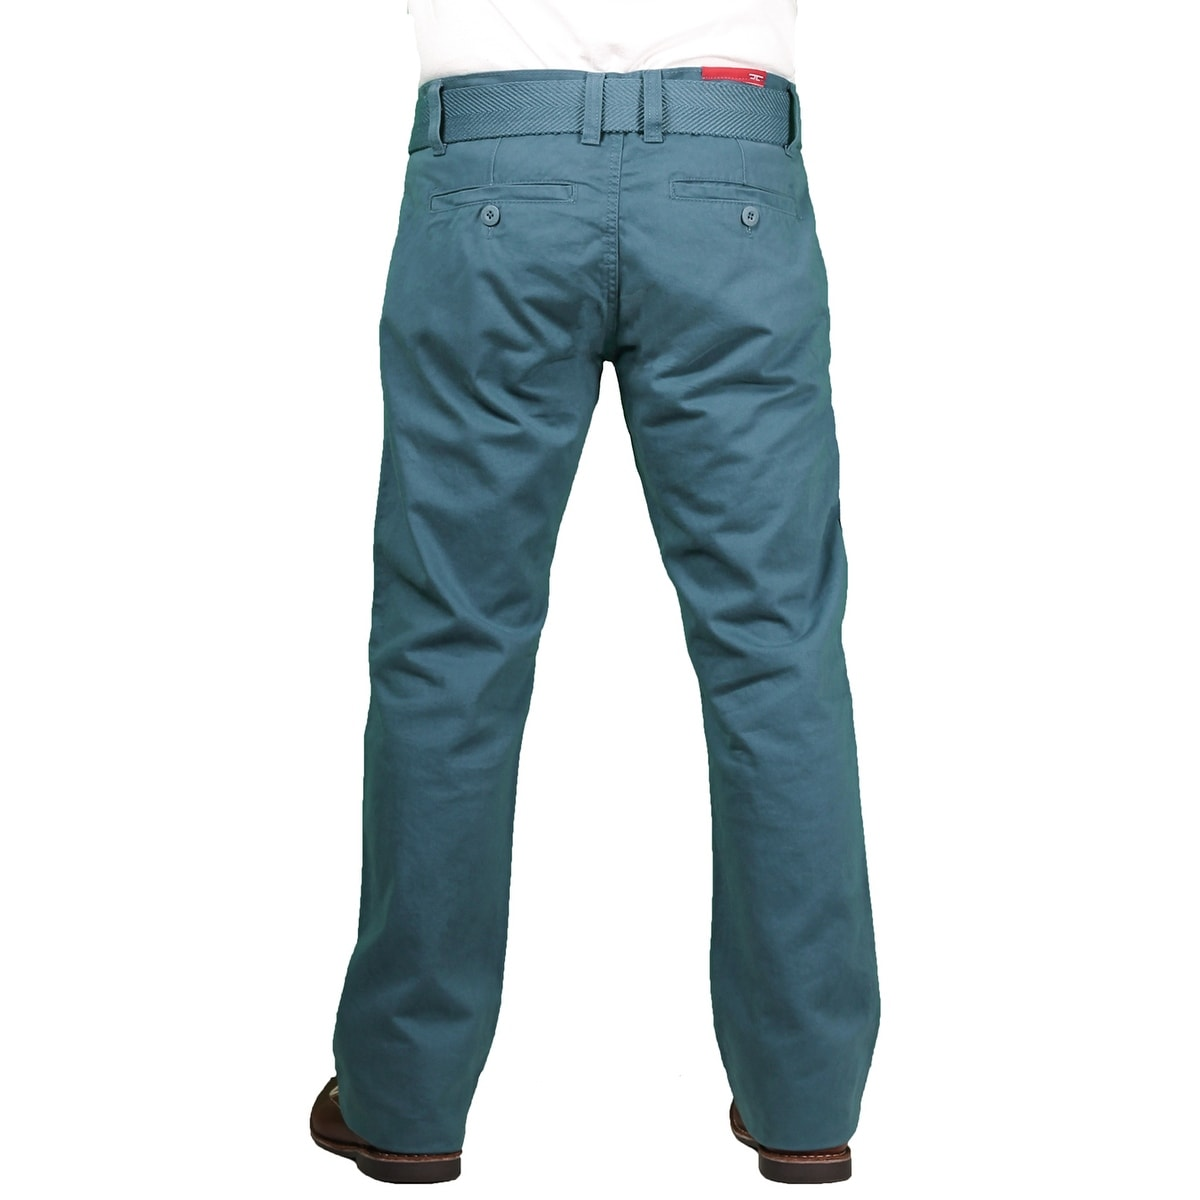 94cd2dcd71791e Shop Jordan Craig Young Men s Belted Twill Casual Pant - Free Shipping On  Orders Over  45 - Overstock - 15092664